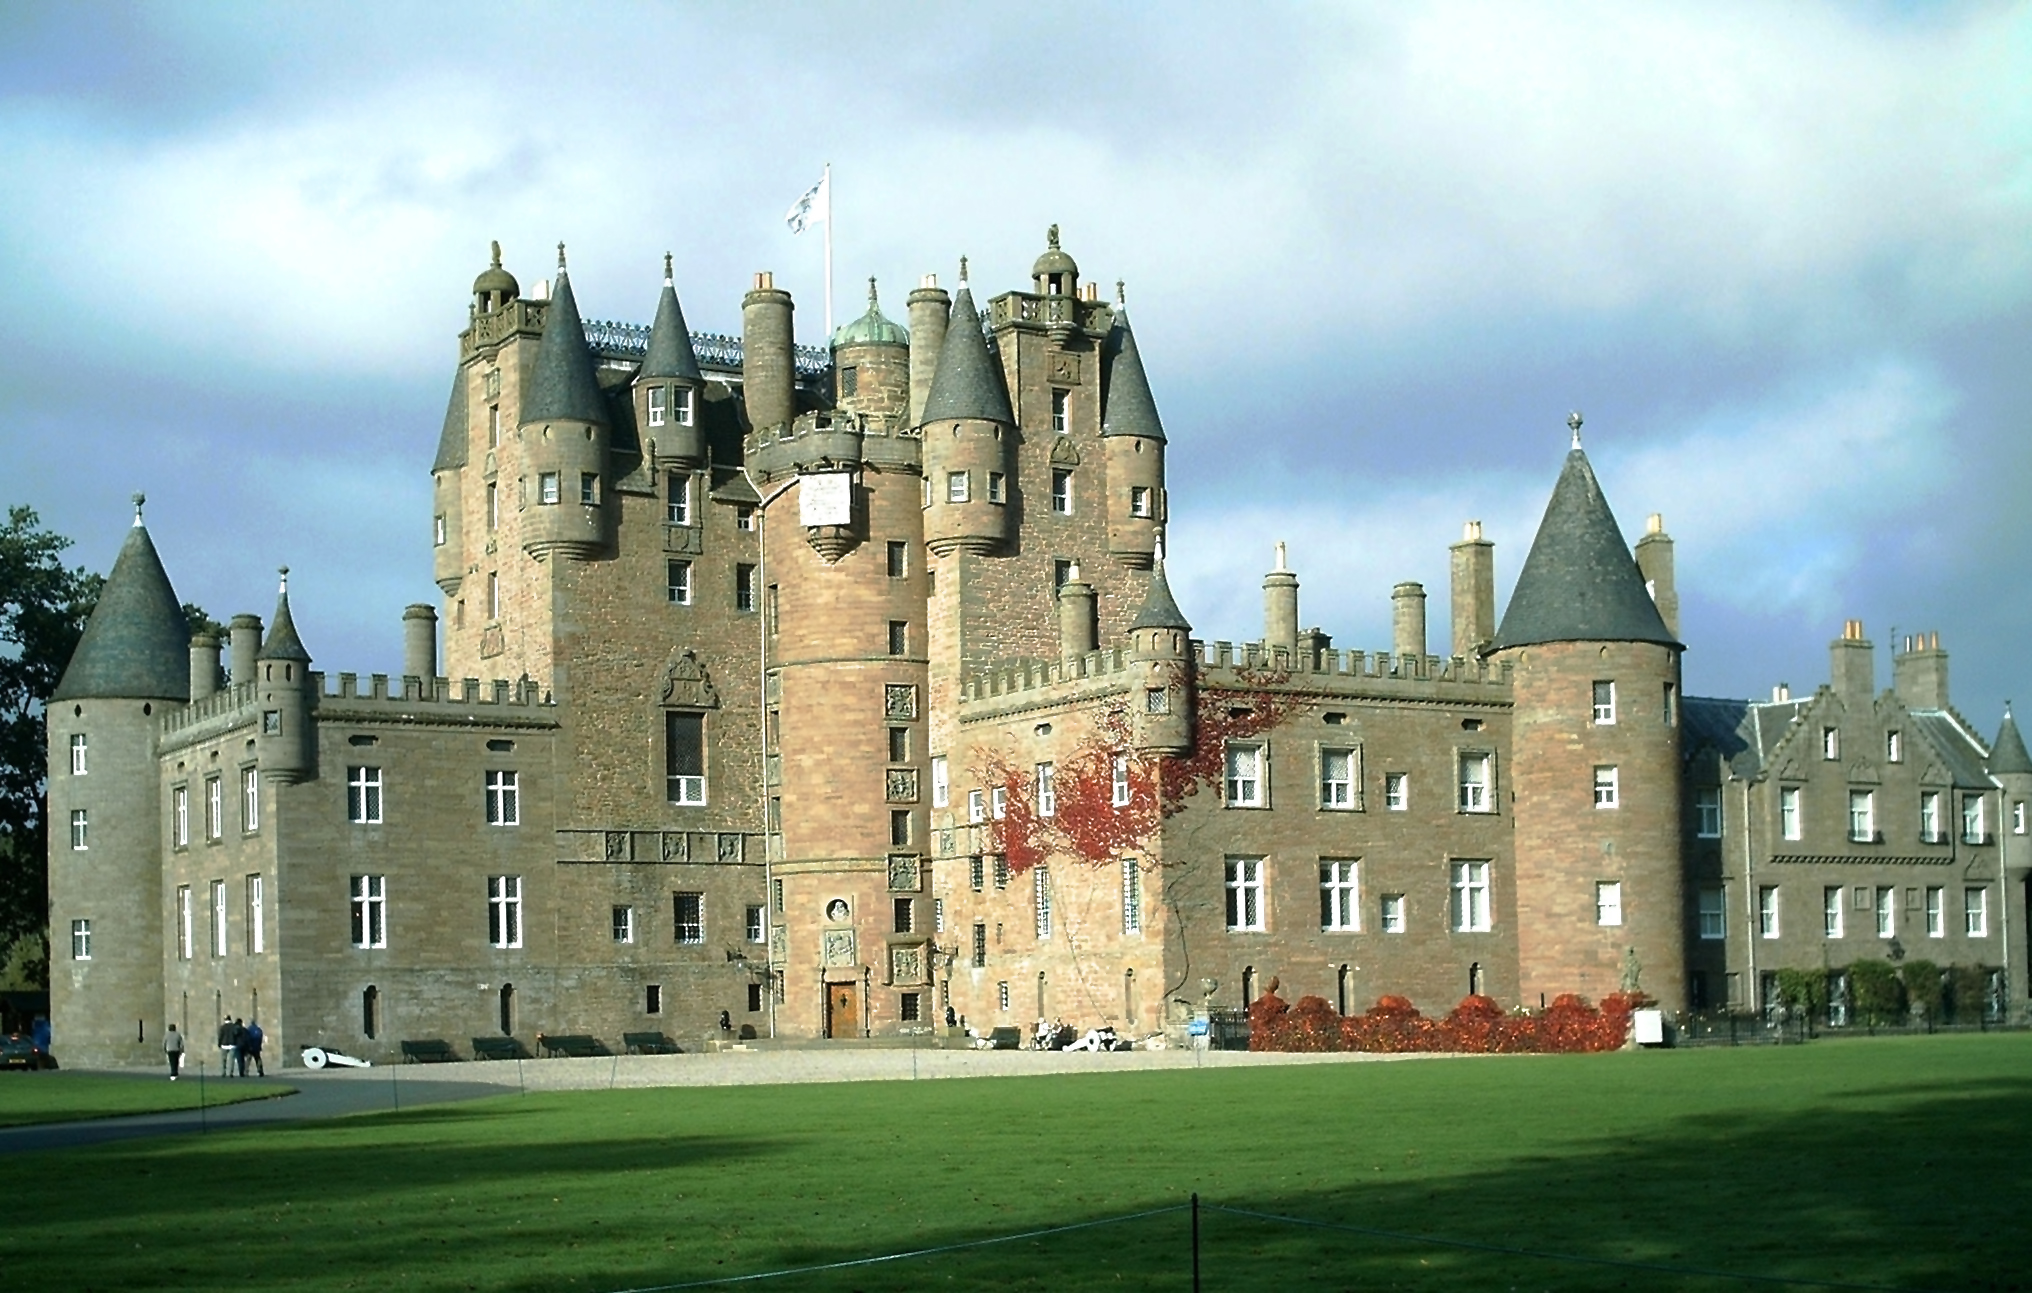 Glamis Castle, Angus & Dundee - Wikimedia Commons